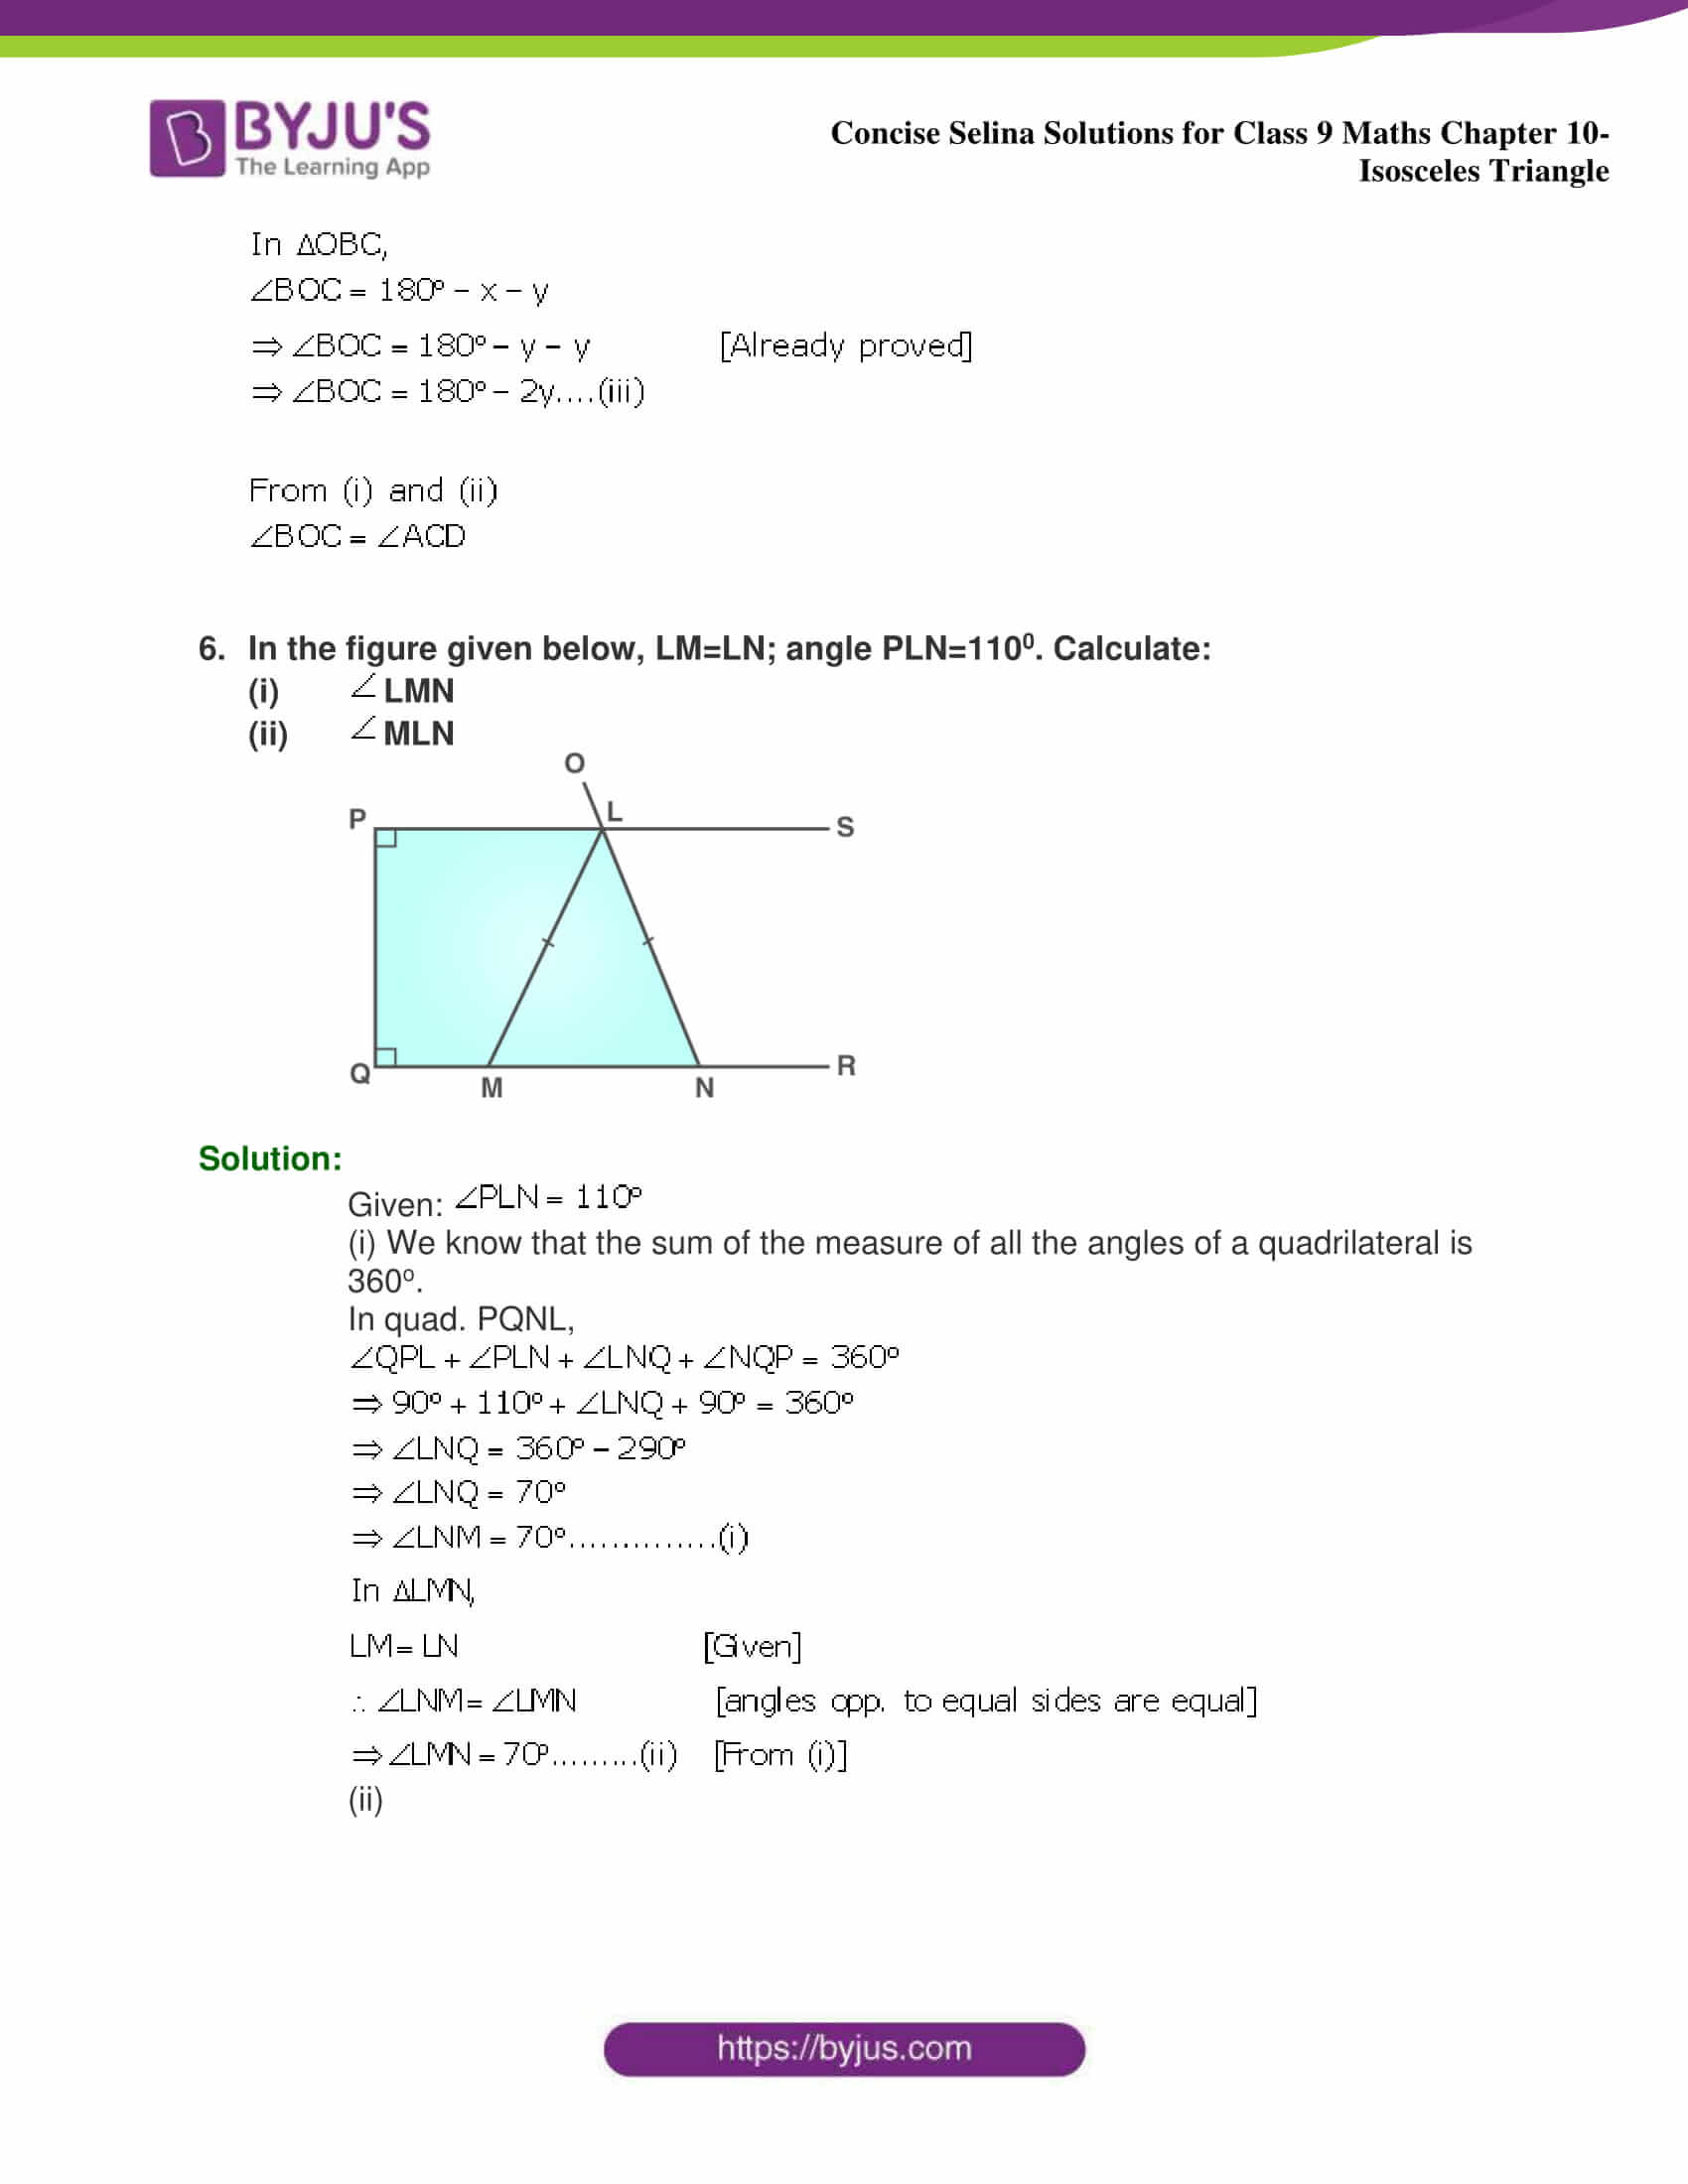 selina Solutions for Class 9 Maths Chapter 10 part 07